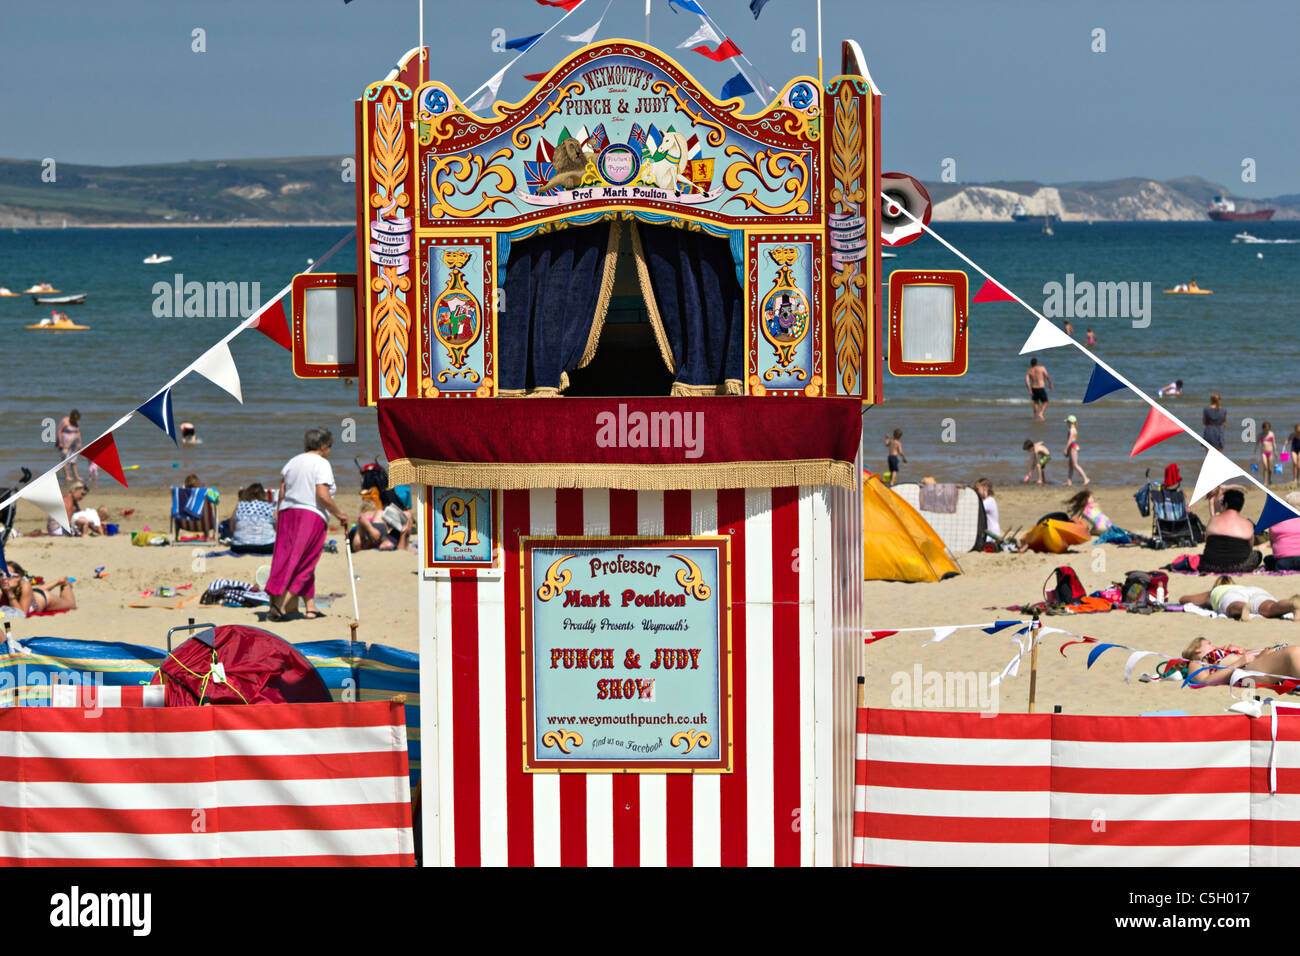 Punch And Judy beach childrenu0027s puppet theatre waiting for curtains to open - Stock Image & Punch Theatre Puppet Stock Photos u0026 Punch Theatre Puppet Stock ...